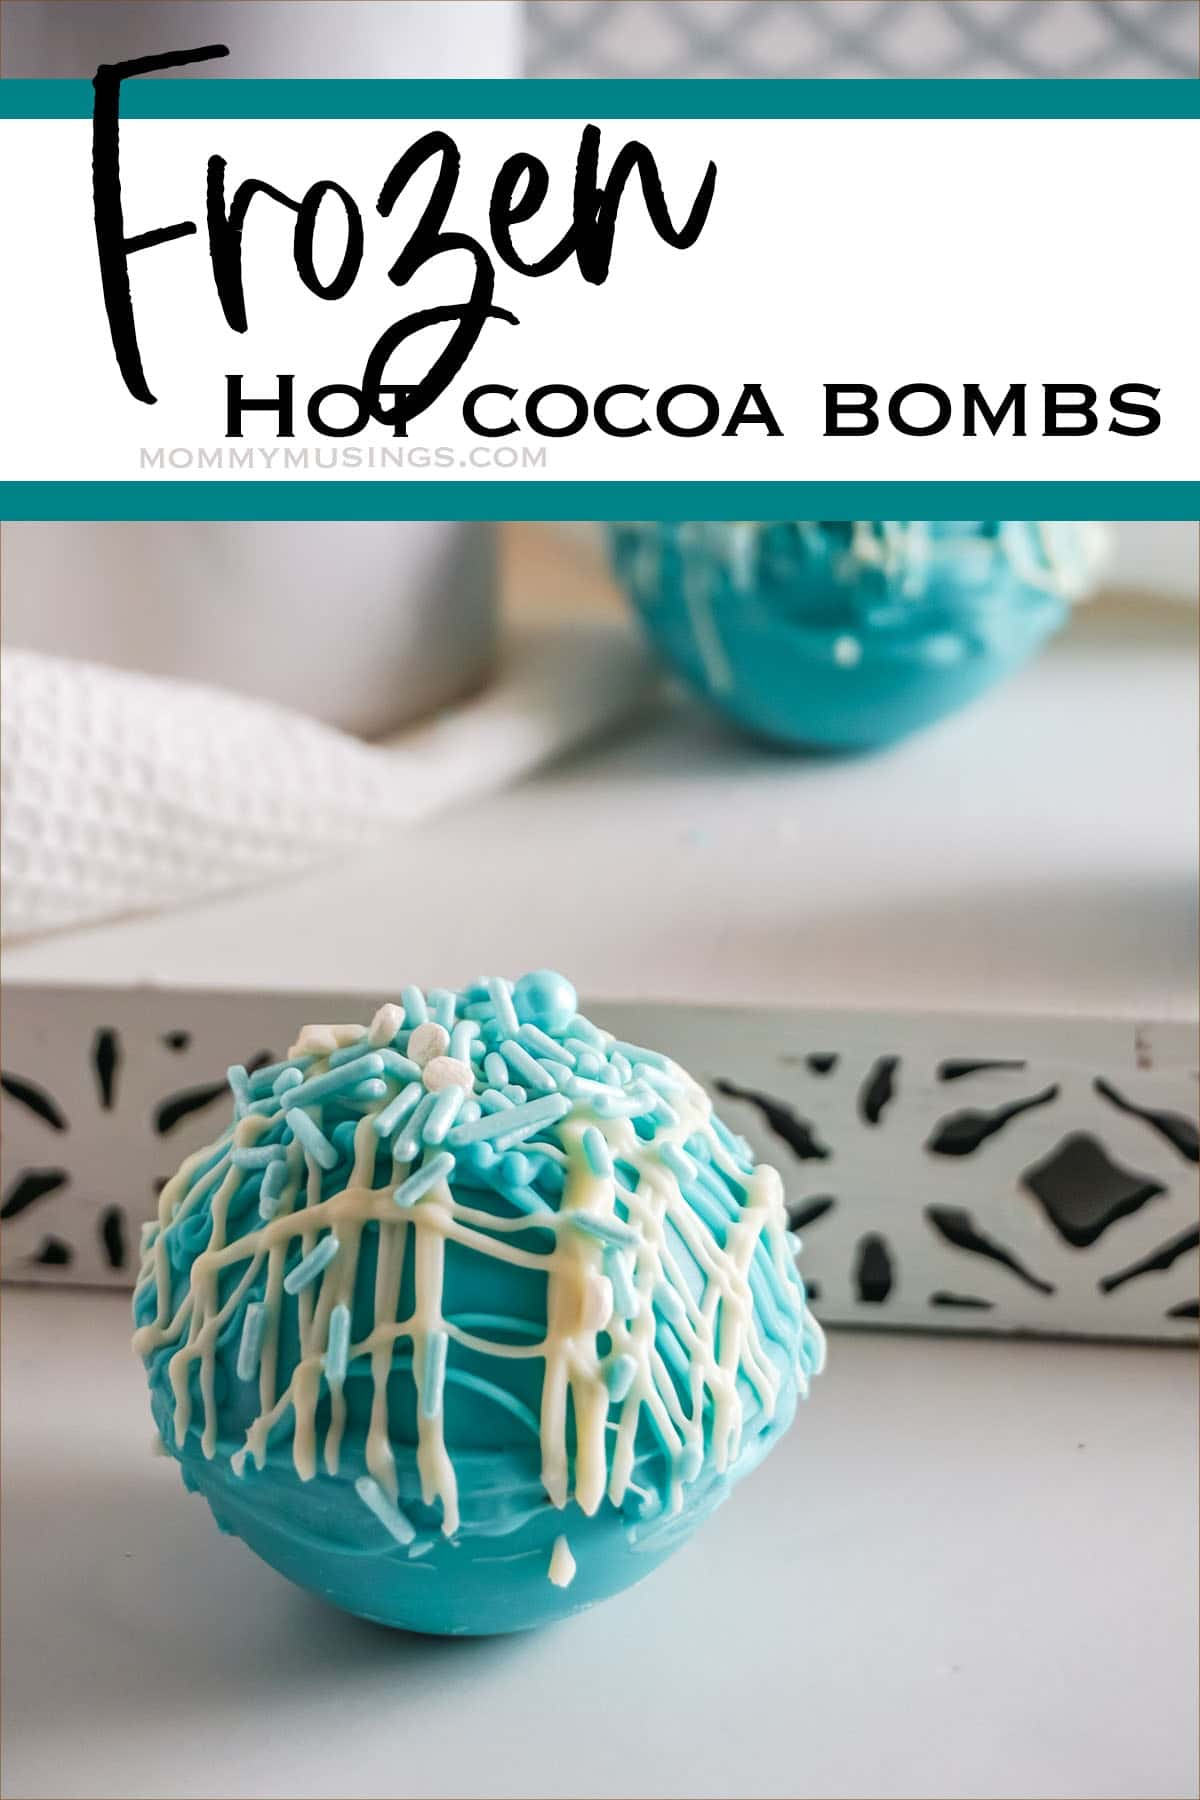 Frozen inspired Hot Cocoa Bombs with text which reads Frozen Hot Cocoa Bombs